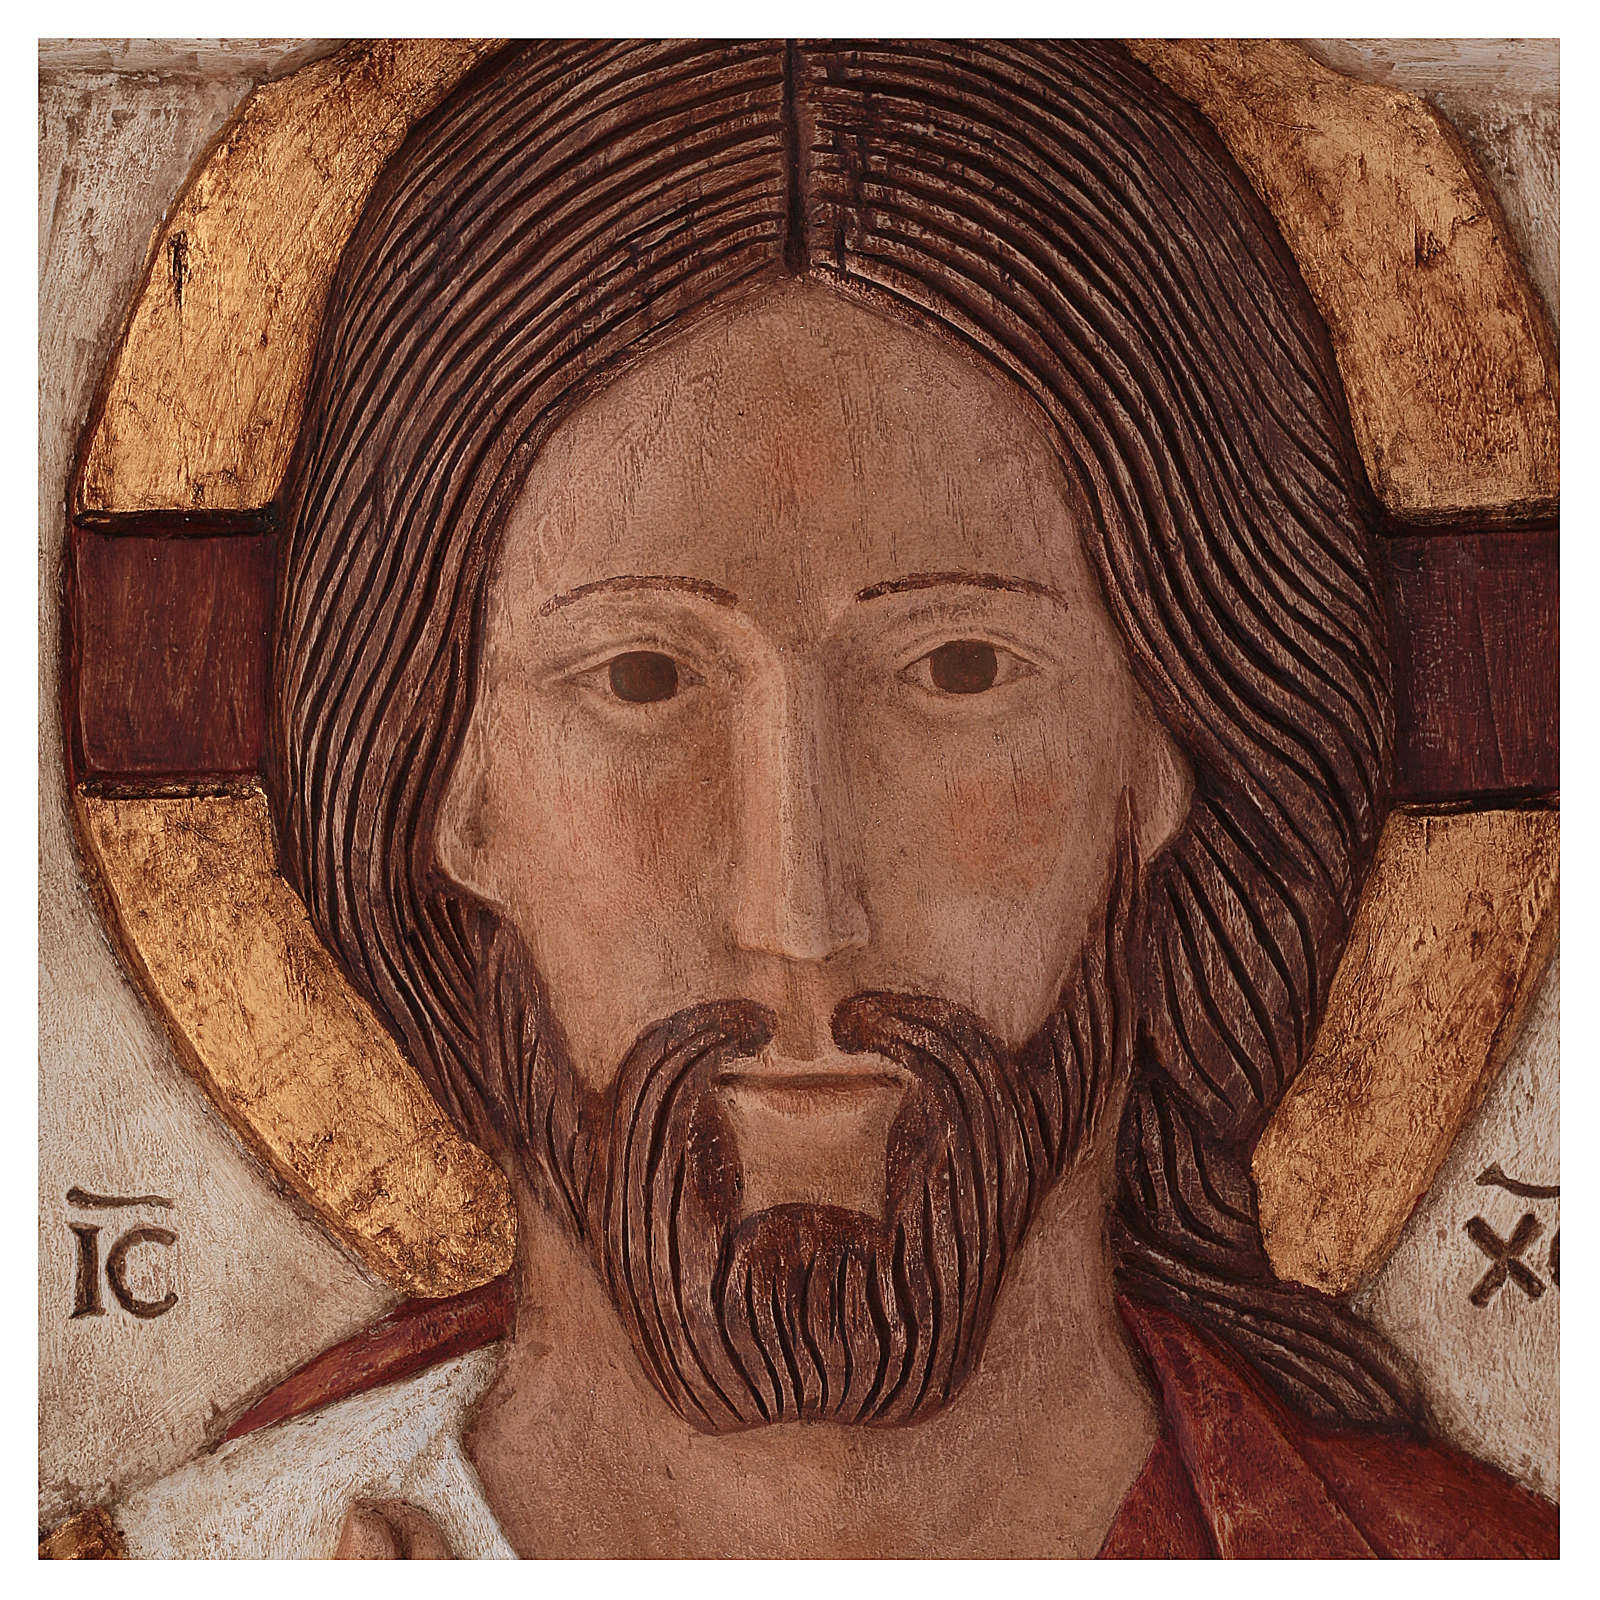 Bas relief of Jesus, the Master 4